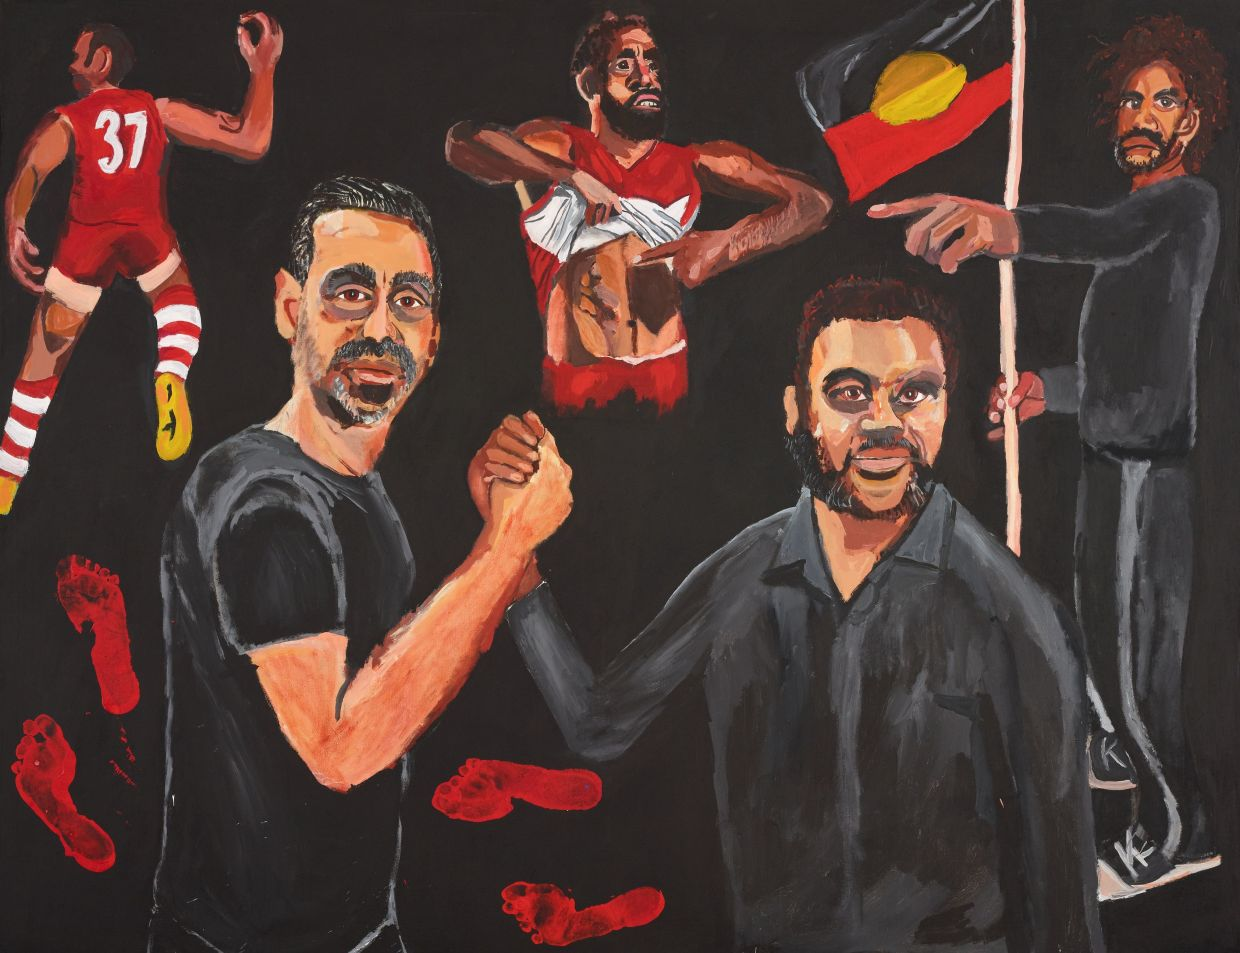 'We share some similar stories and experiences - of disconnection from culture, language and country, and the constant pressures of being an Aboriginal man in this country,' says Namatjira of  his portrait tribute to indigenous footballer and activist Adam Goodes. Photo: Reuters